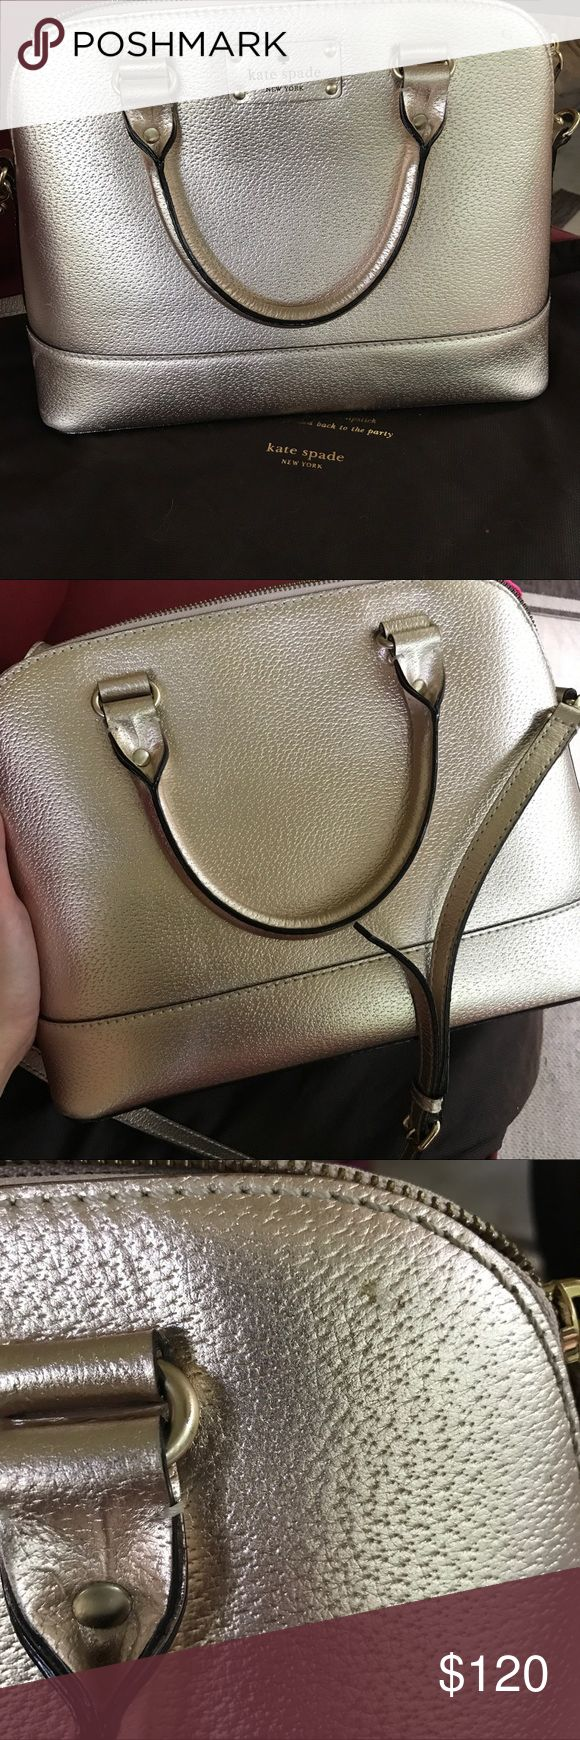 Kate Spade Wellesley Small Rachelle in Rose Gold Has a minor scratch/flaw (as pictured), otherwise in great condition kate spade Bags Satchels